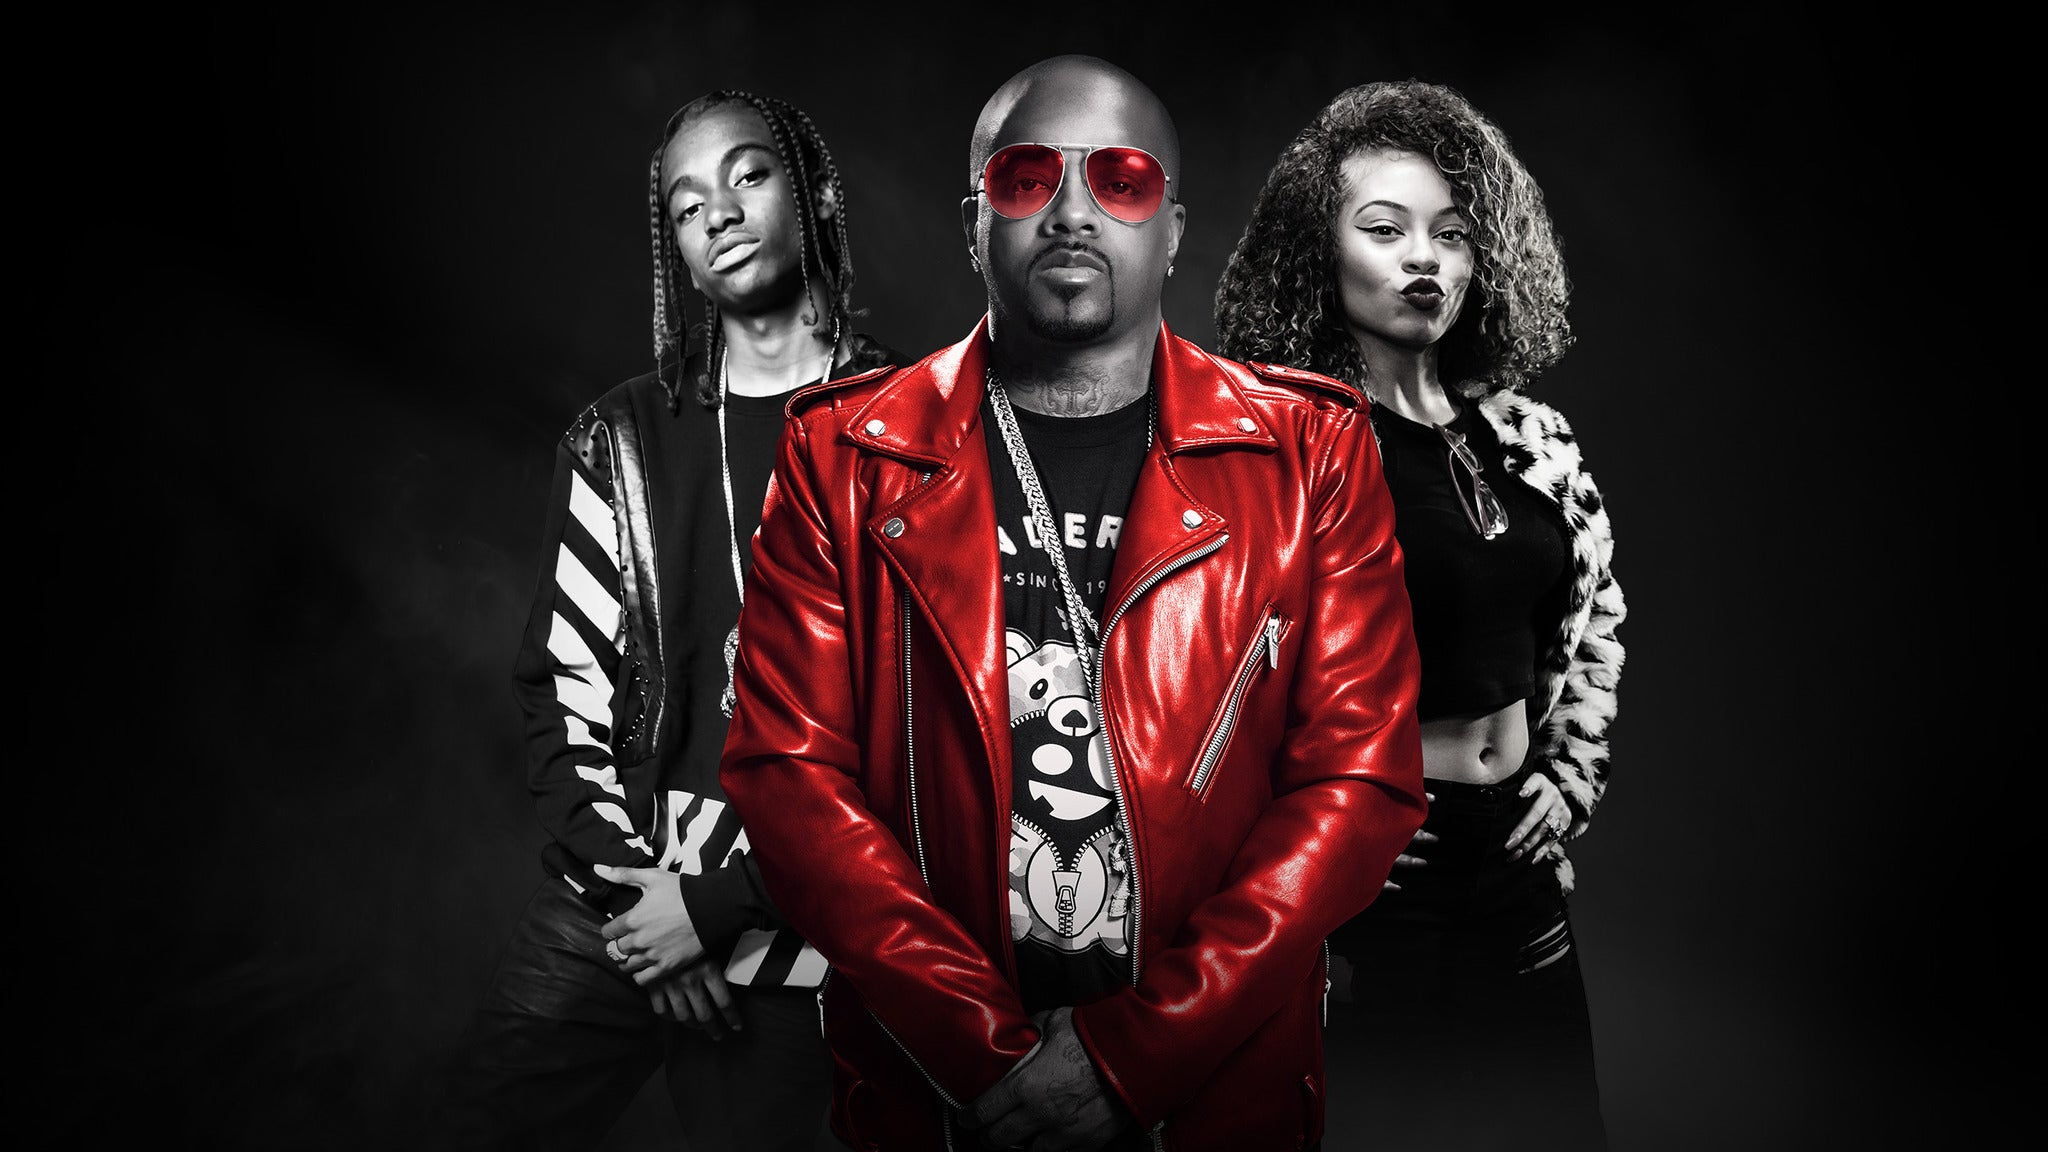 Jermaine Dupri Presents SoSoSUMMER 17 Tour